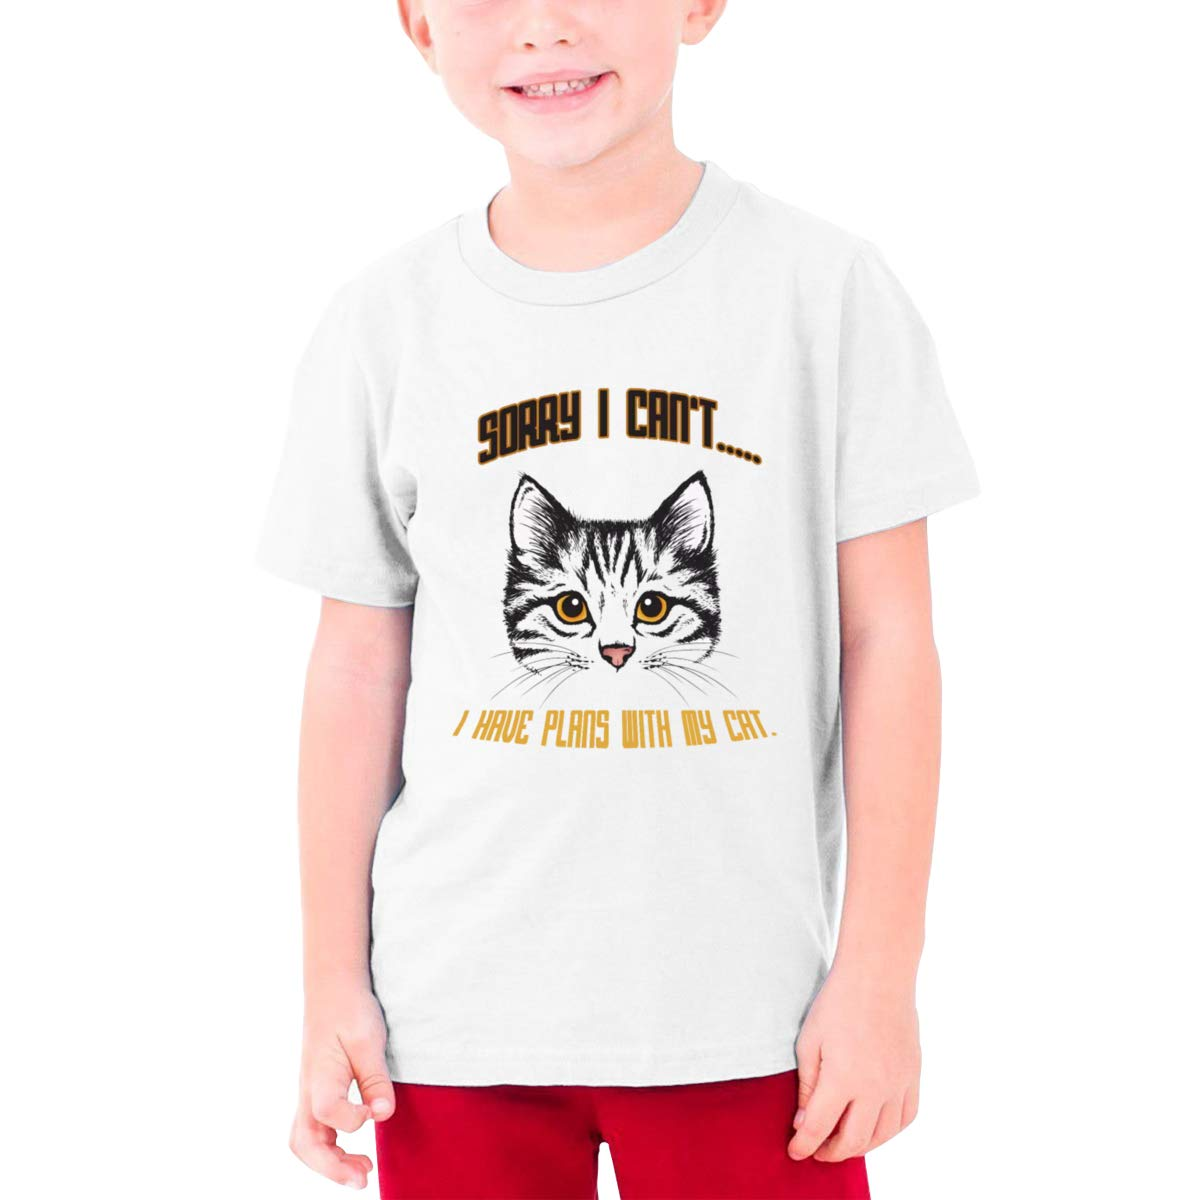 Sorry I Have Plans with My Cat Boys Short-Sleeve Tee I Cant